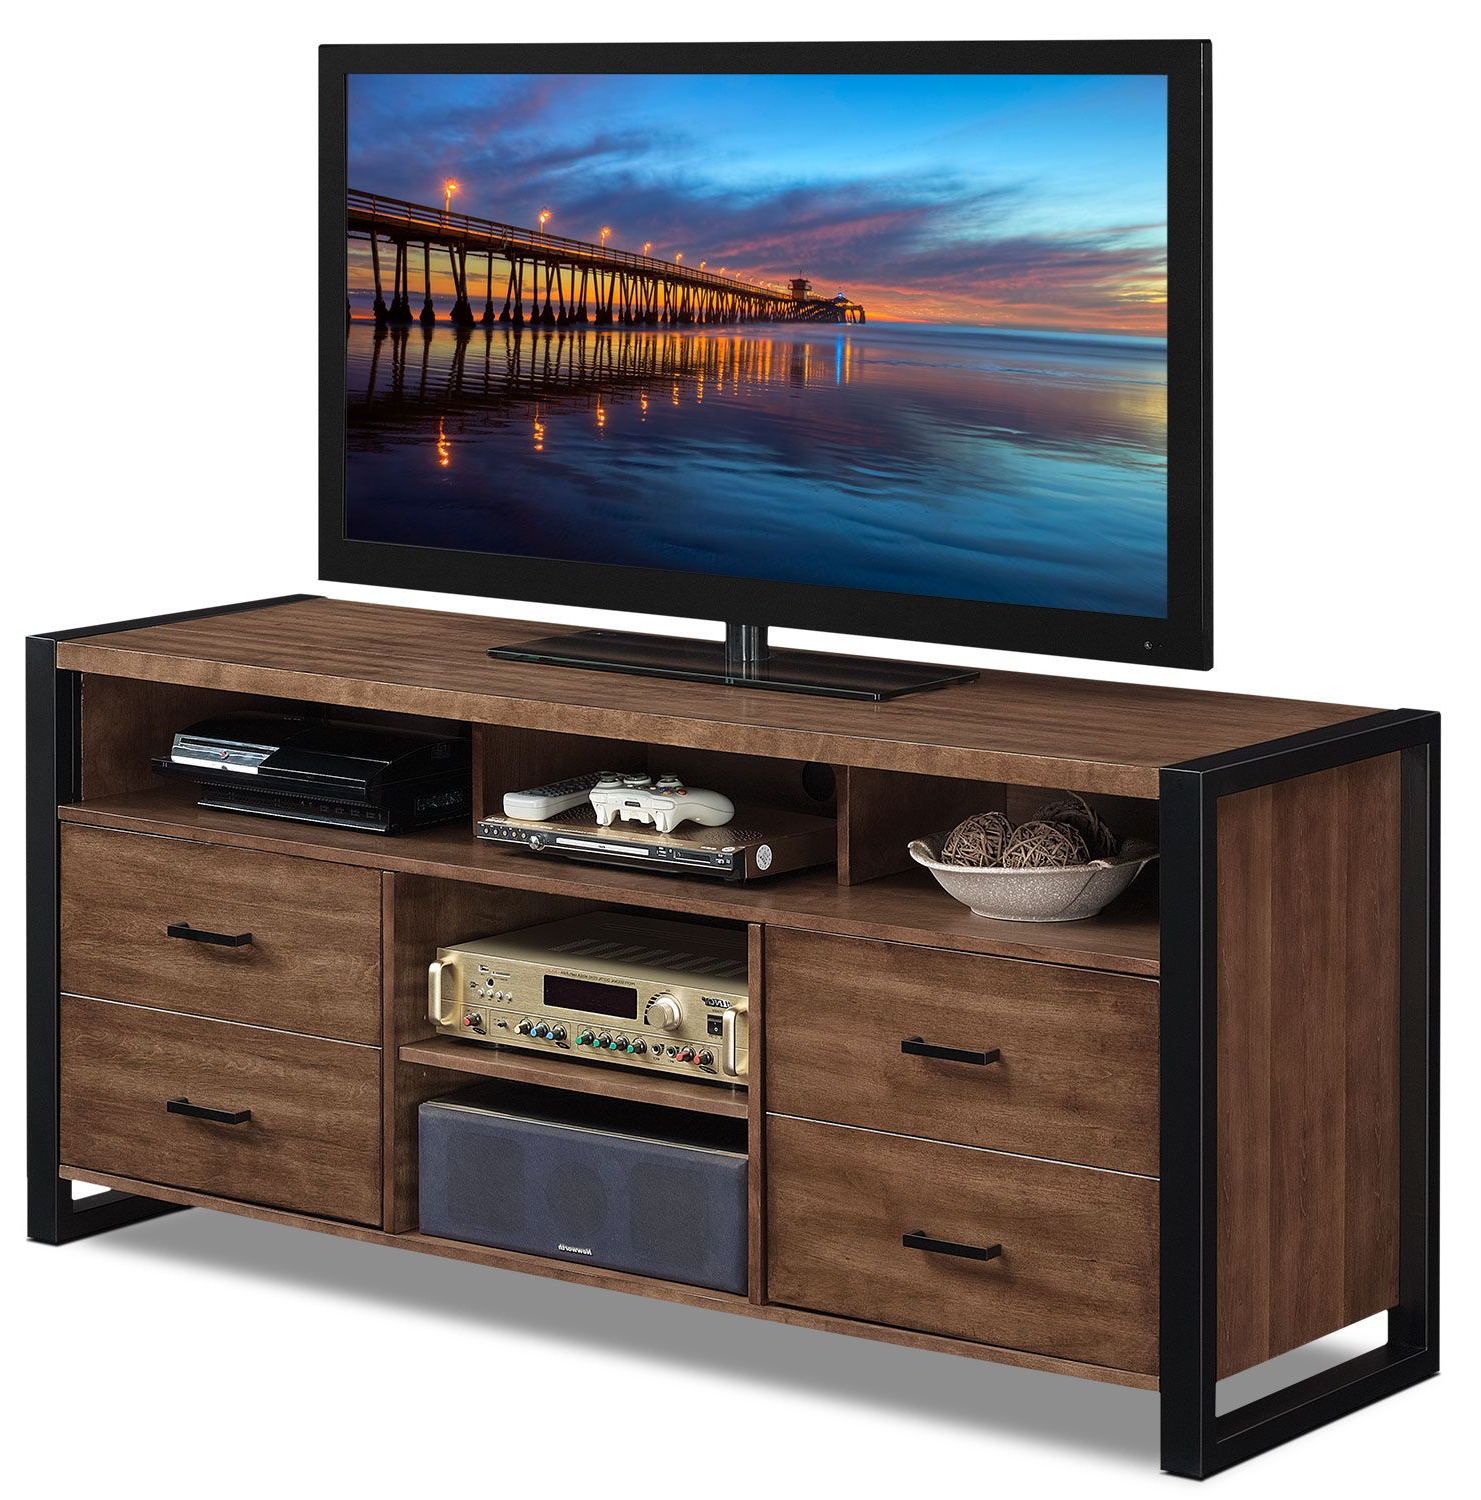 Kai 63 Inch Tv Stands In Well Liked Big Tv Stand Wood Contemporary Meets Industrial In This Deblin (View 20 of 20)